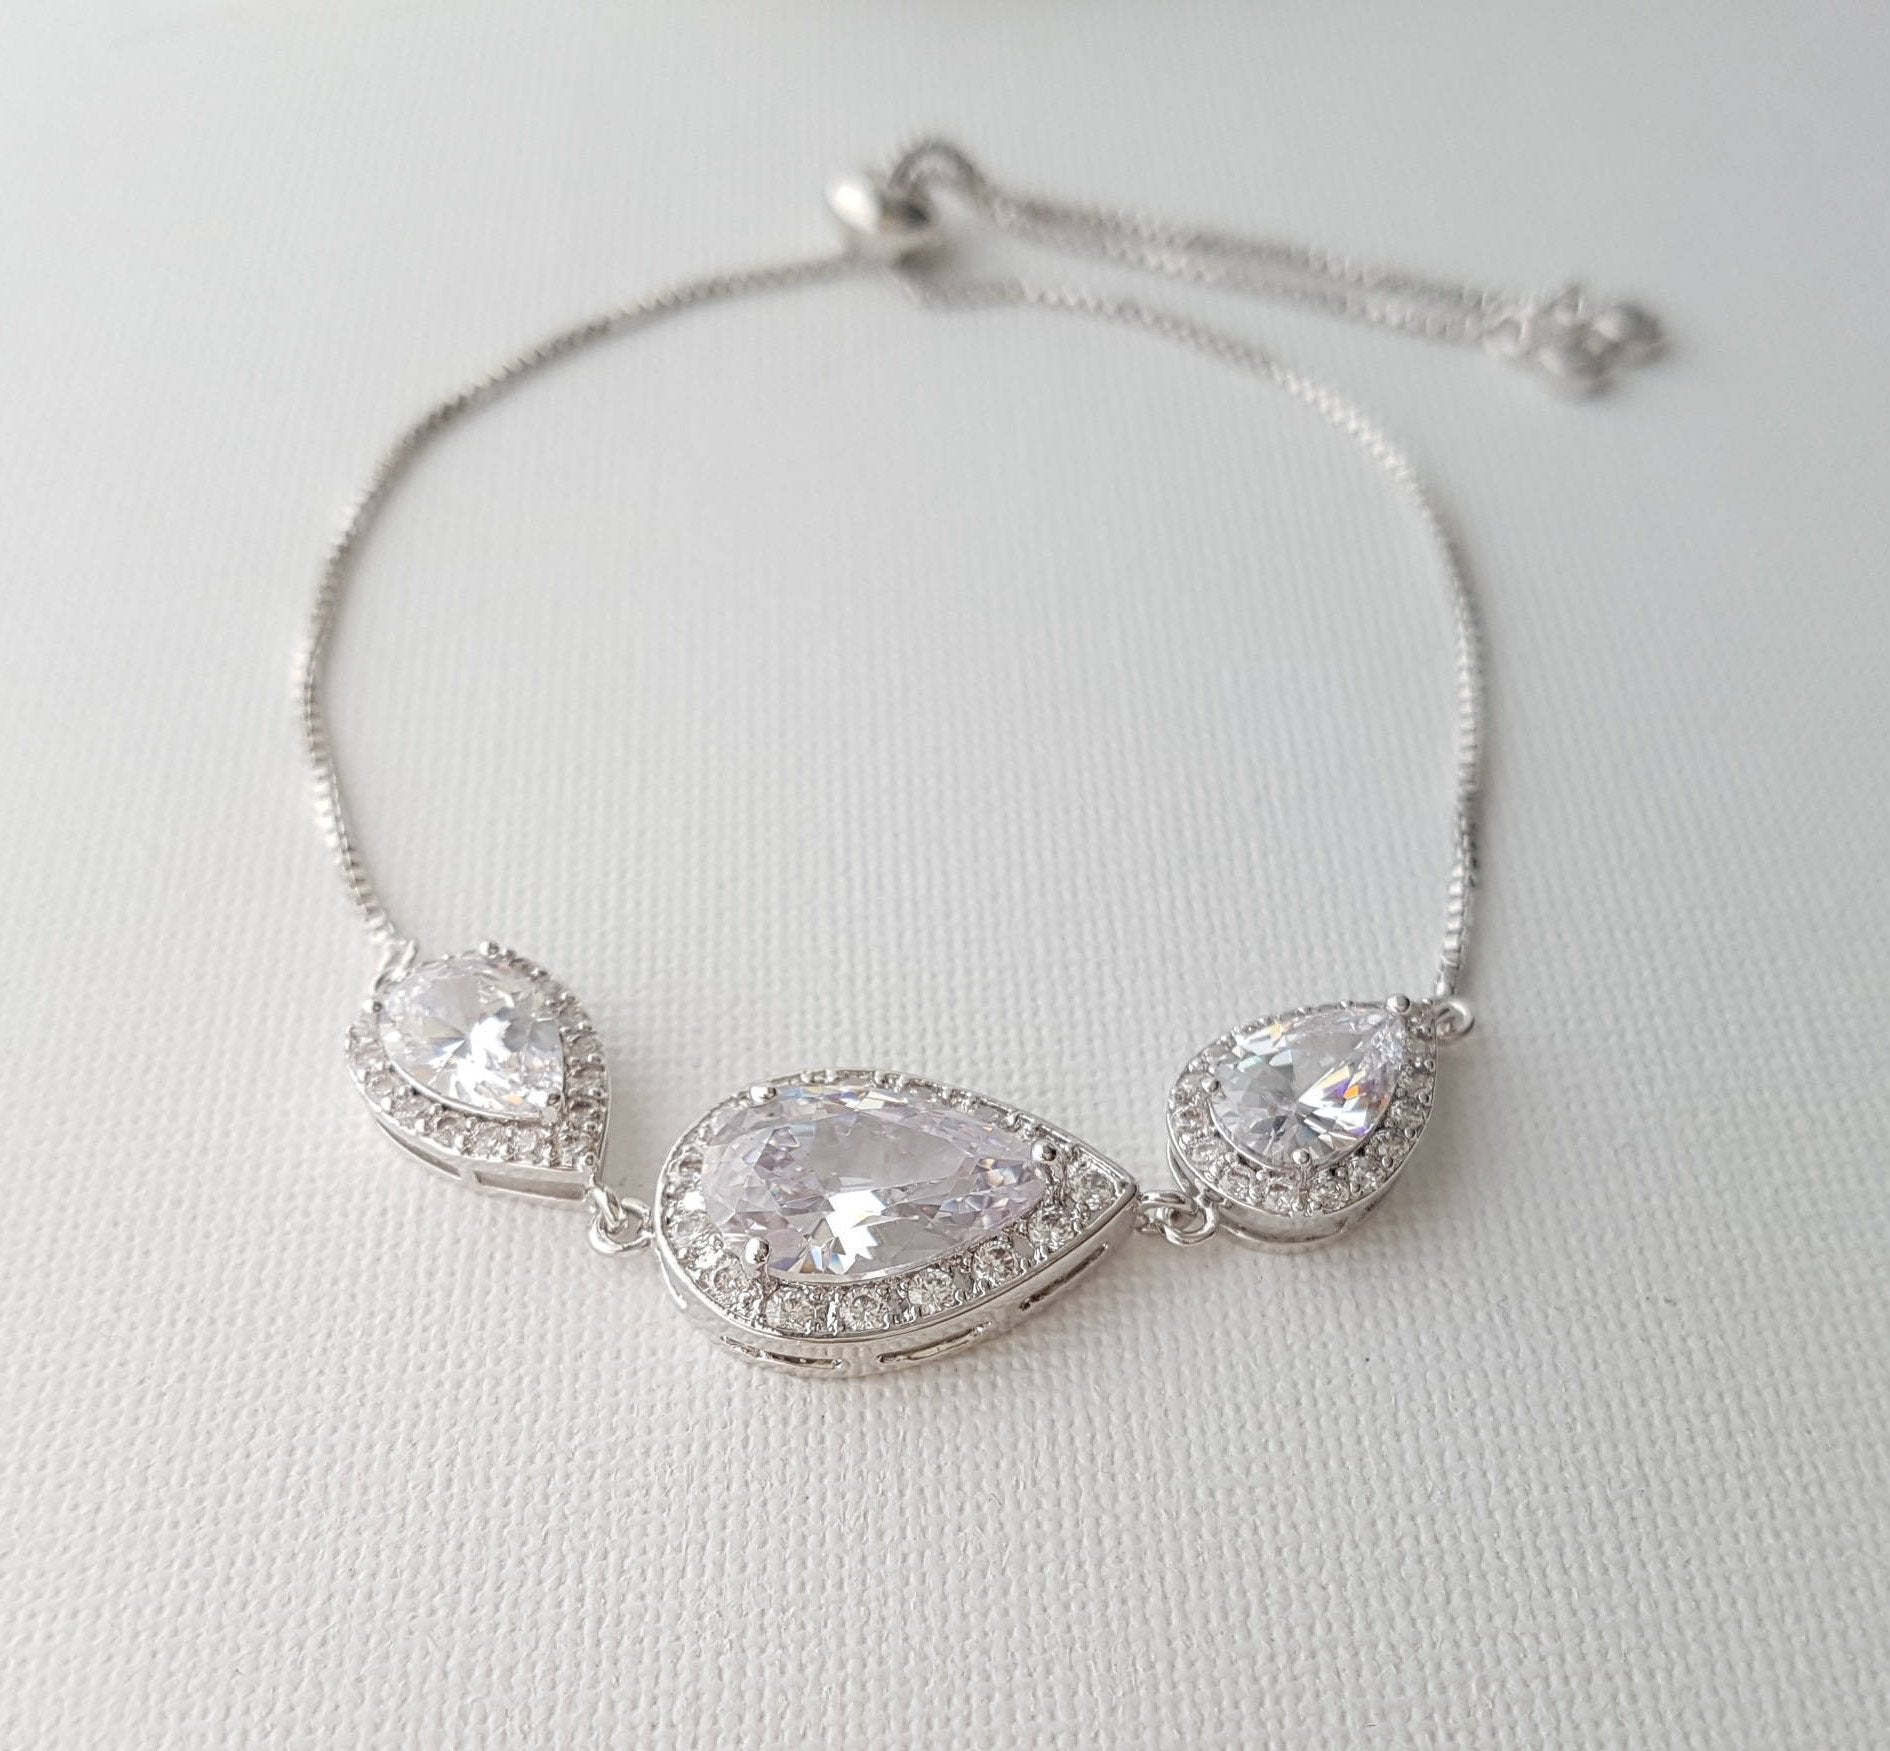 Crystal Bridal Bracelet, Wedding Jewelry, Bridesmaid Bracelet, Teardrop Bracelet, Zirconia Wedding Bracelet Adjustable Bracelet, Evelyn - PoetryDesigns